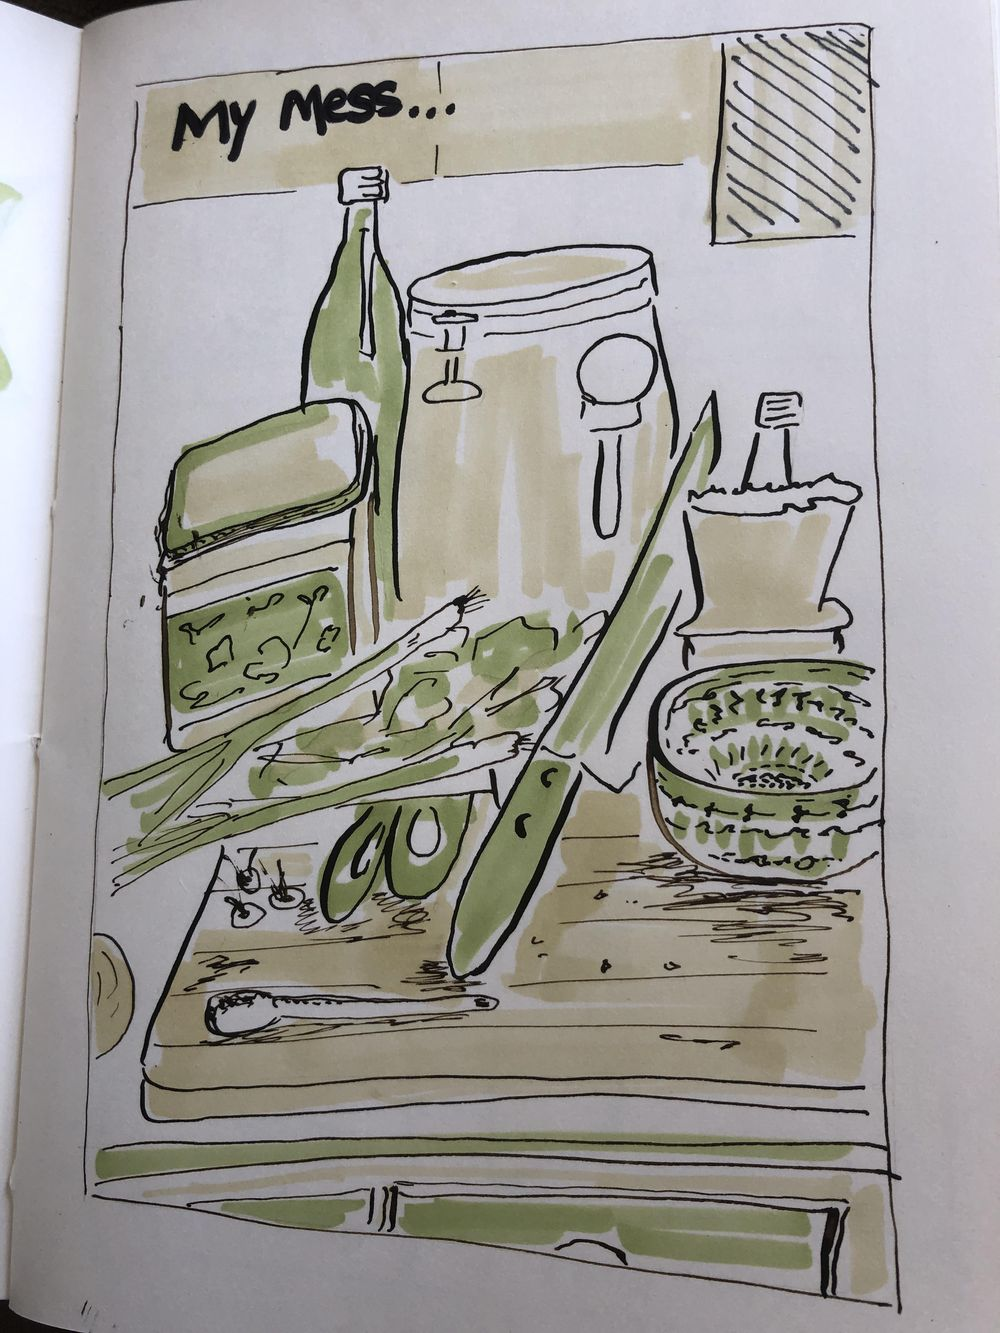 14 days of illustrated journal prompts - image 12 - student project